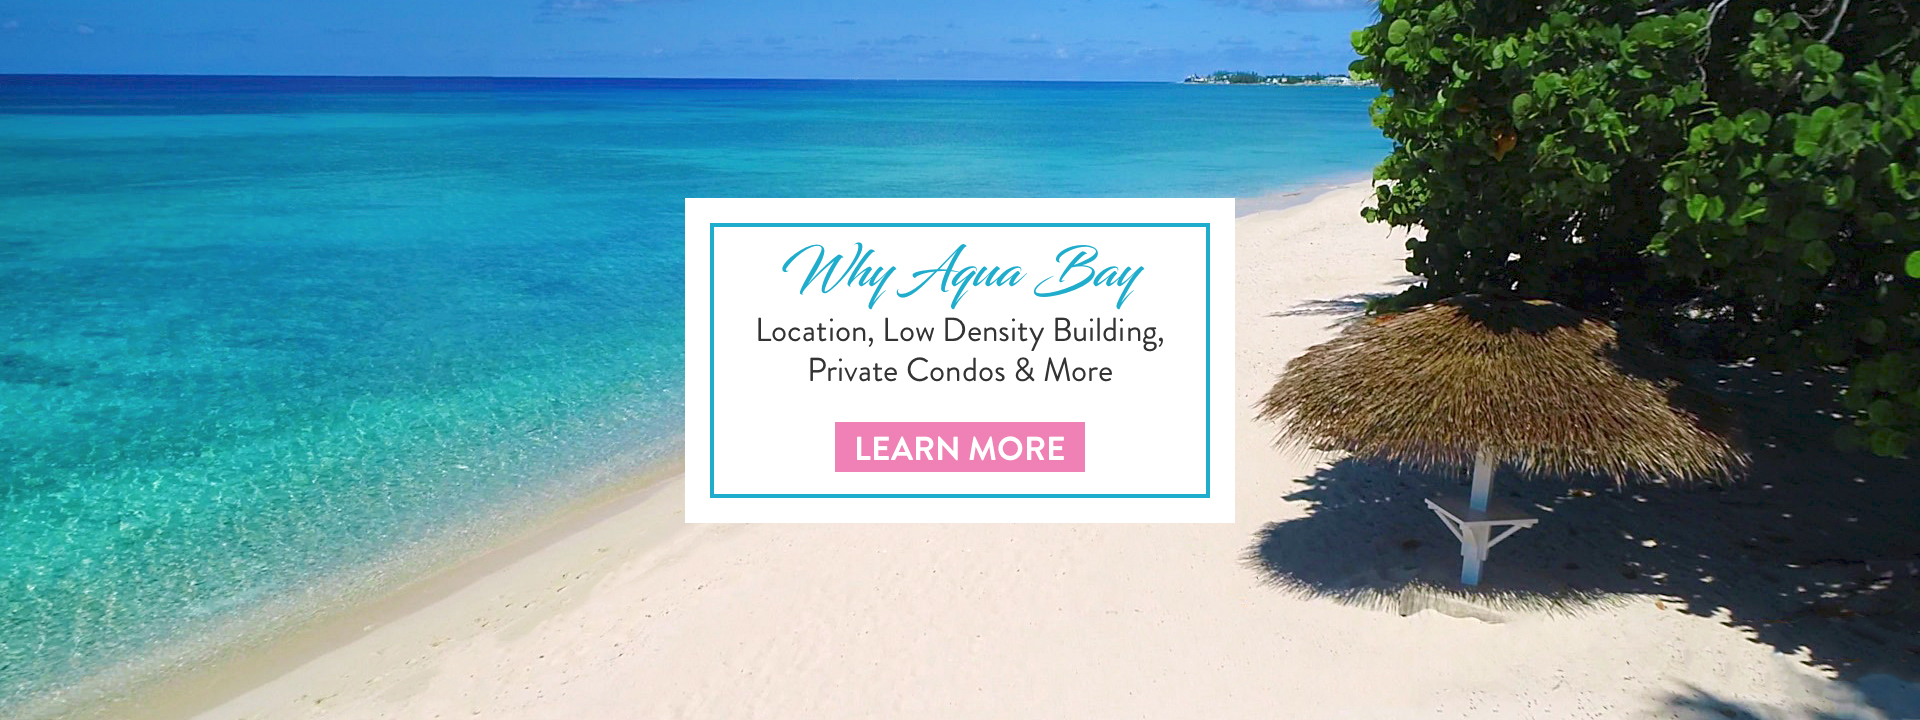 Why Aqua Bay - Aqua Bay Club, Grand Cayman